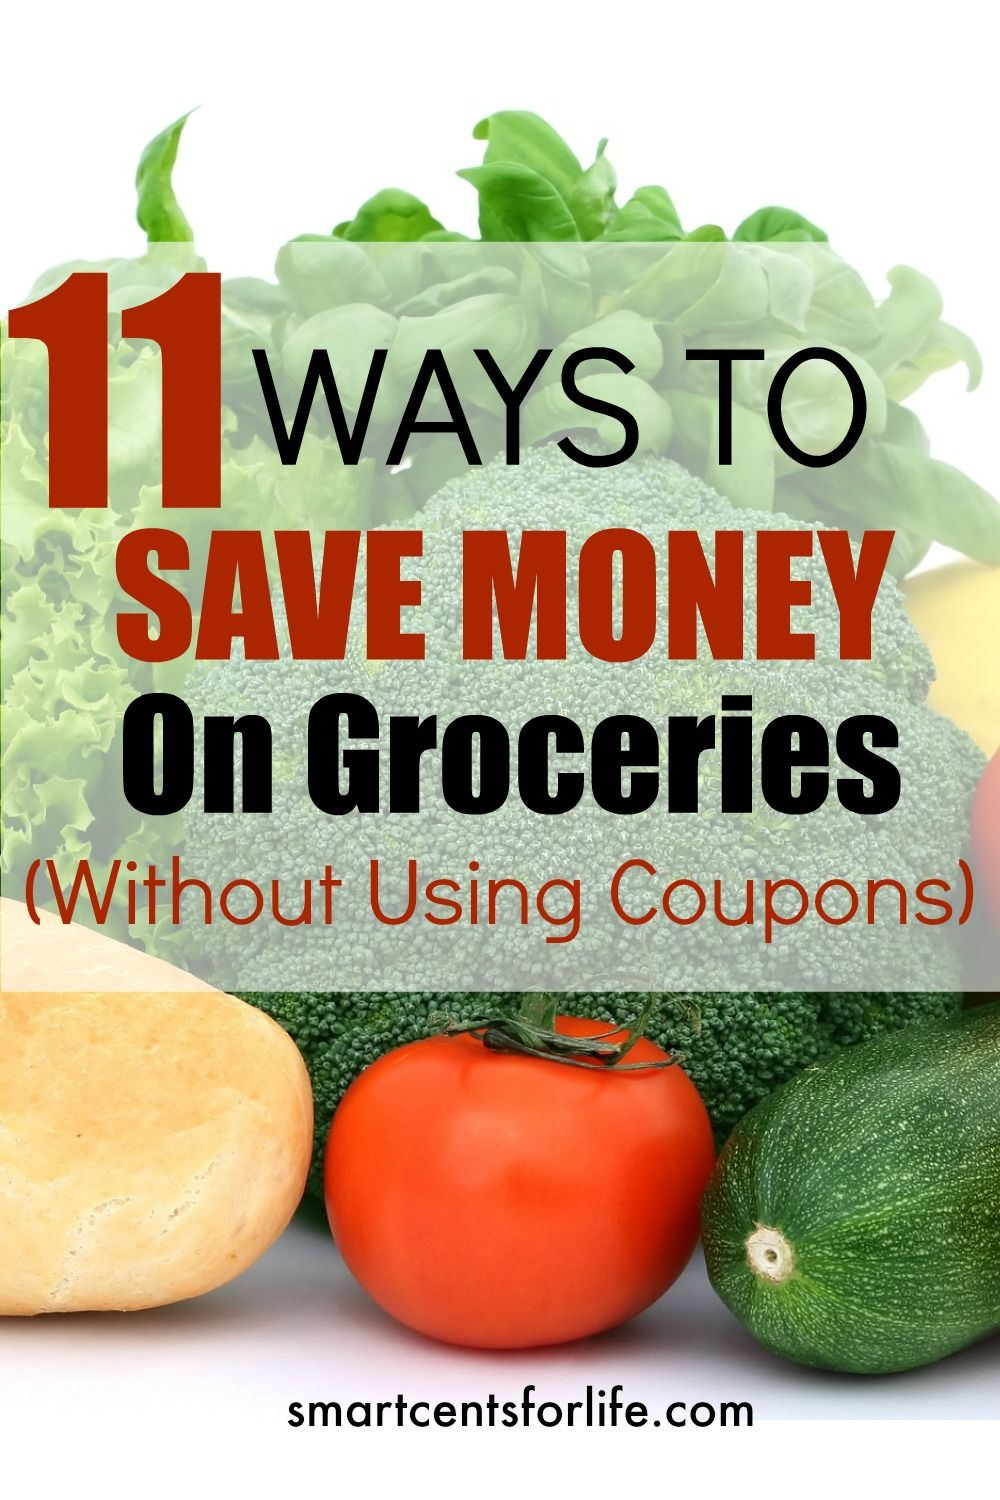 11 Easy Ways to Save Money on Groceries Without Using Coupons!